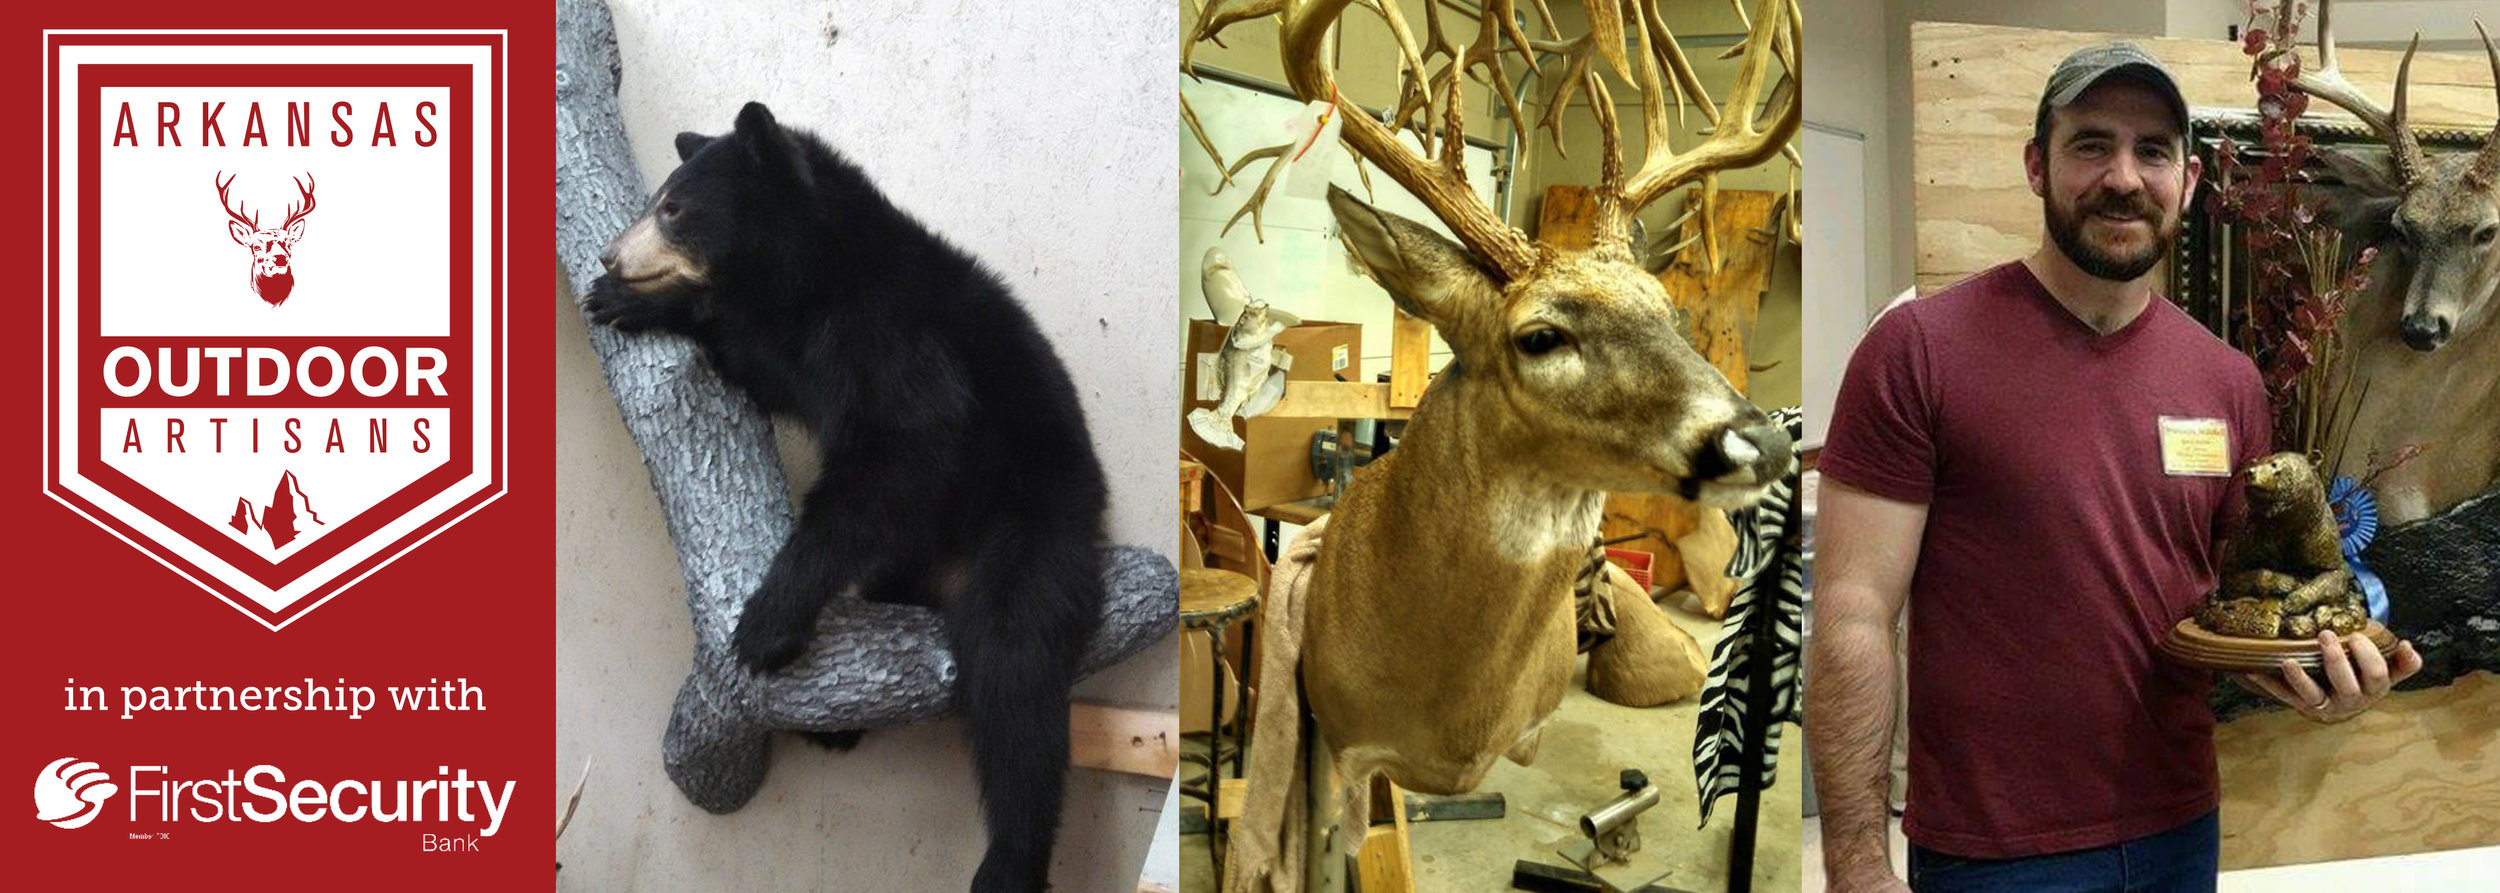 Advanced Taxidermy specializes in common mammals like bear (left) and deer (middle).Brandon Mitchell brought his taxidermy expertise from Indiana to Van Buren (right).